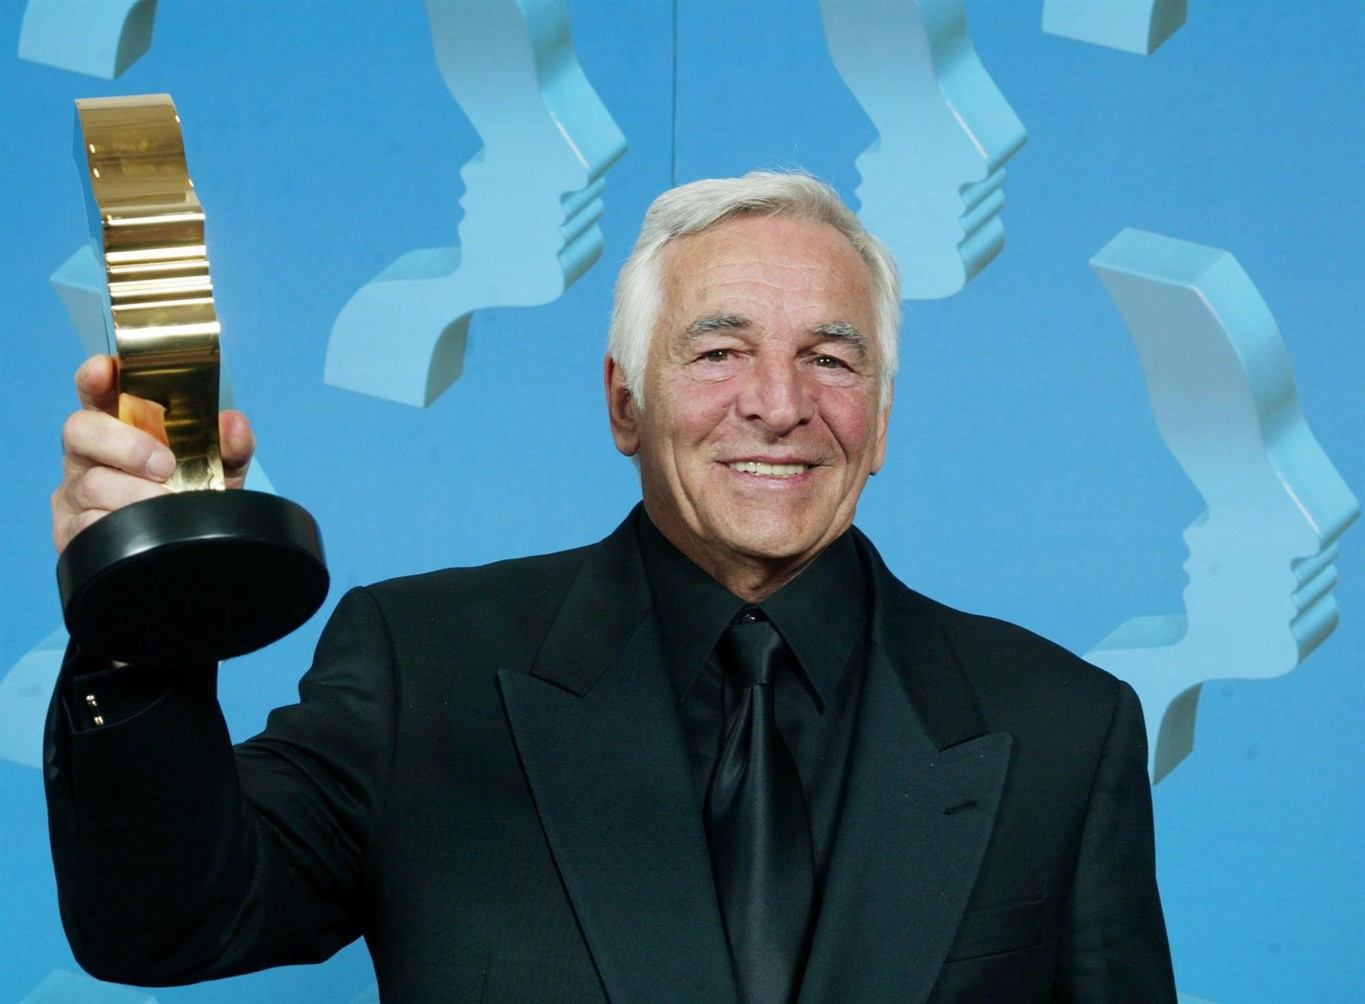 Battlestar Galactica Actor Donnelly Rhodes Dies at 80